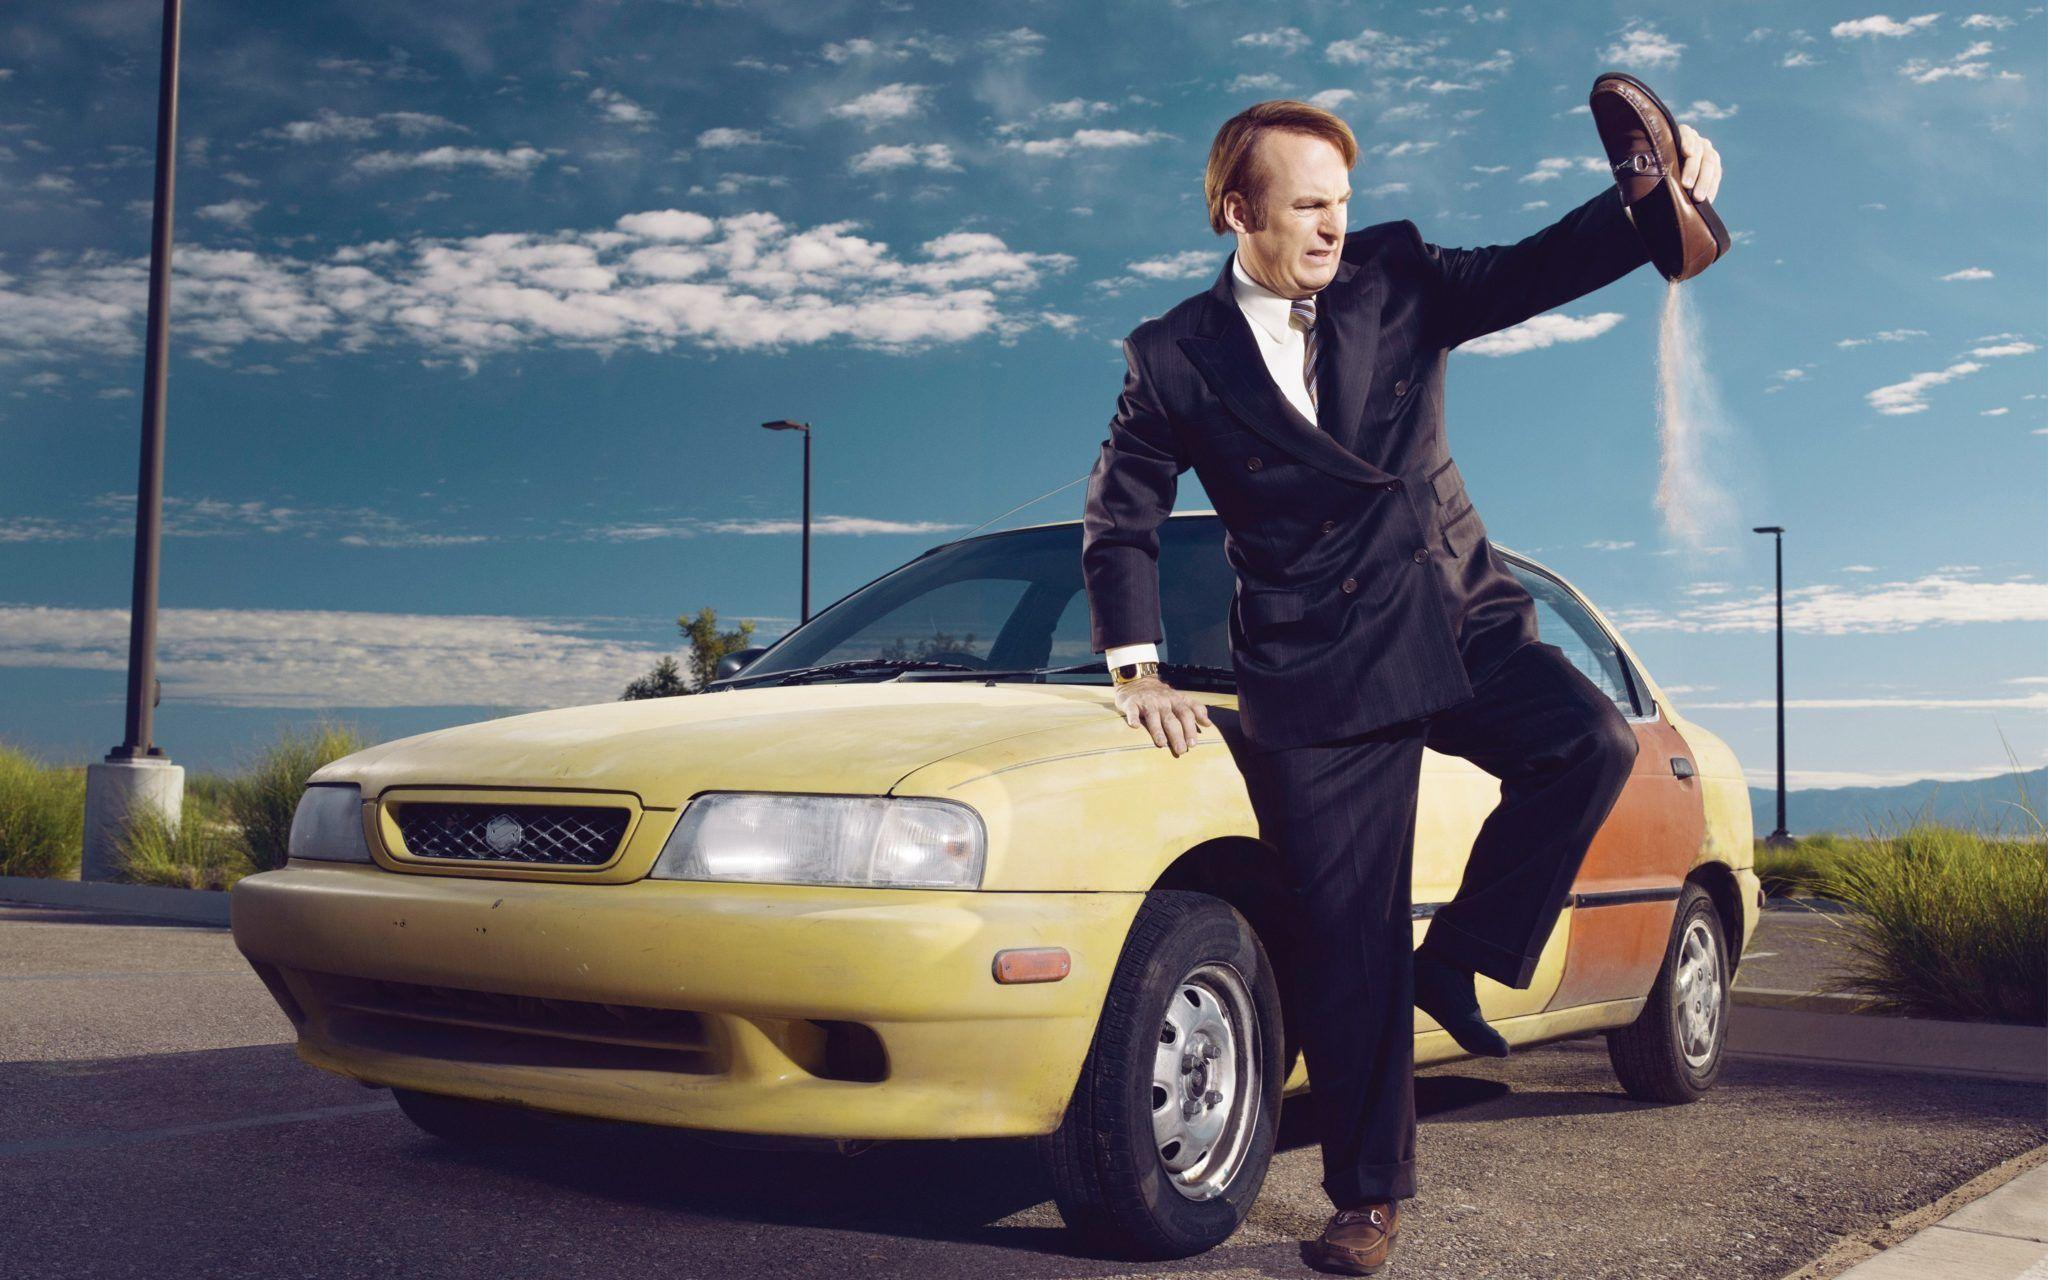 Bob Odenkirk in Better Call Saul Wide HD Wallpapers